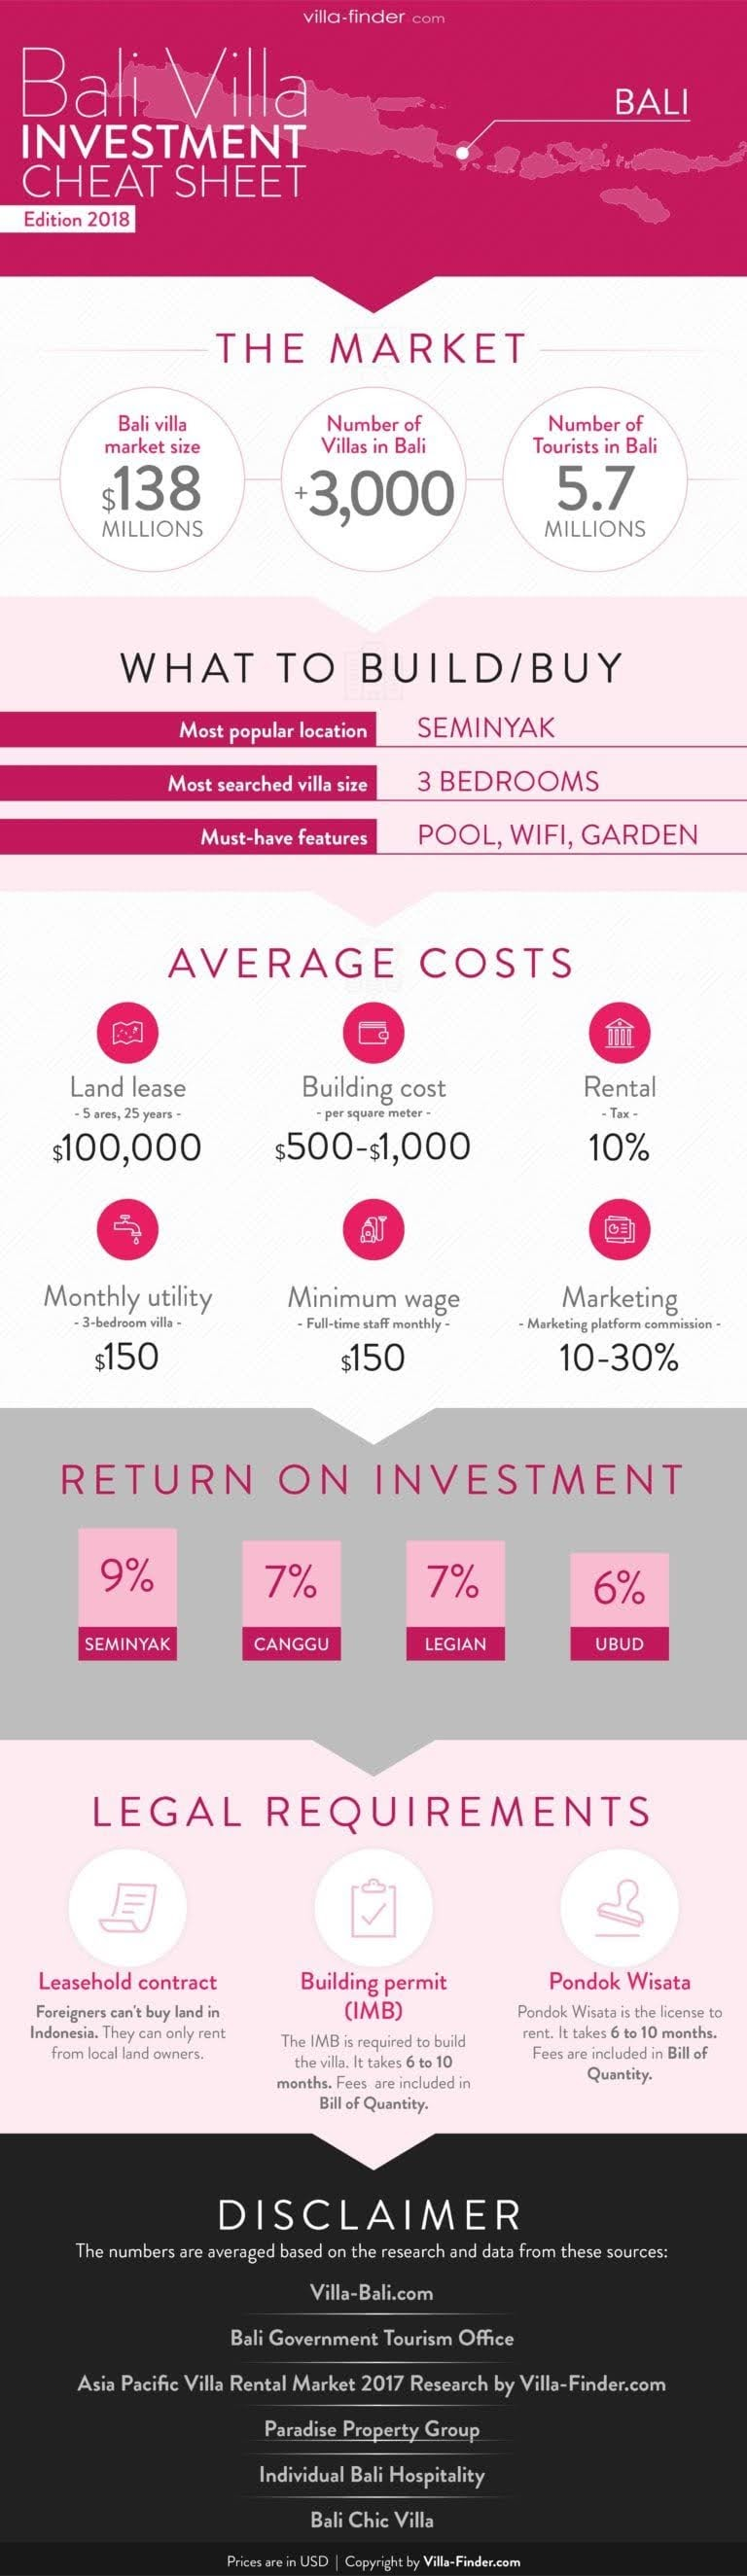 Bali Villa Investment Cheat Sheet #infographic